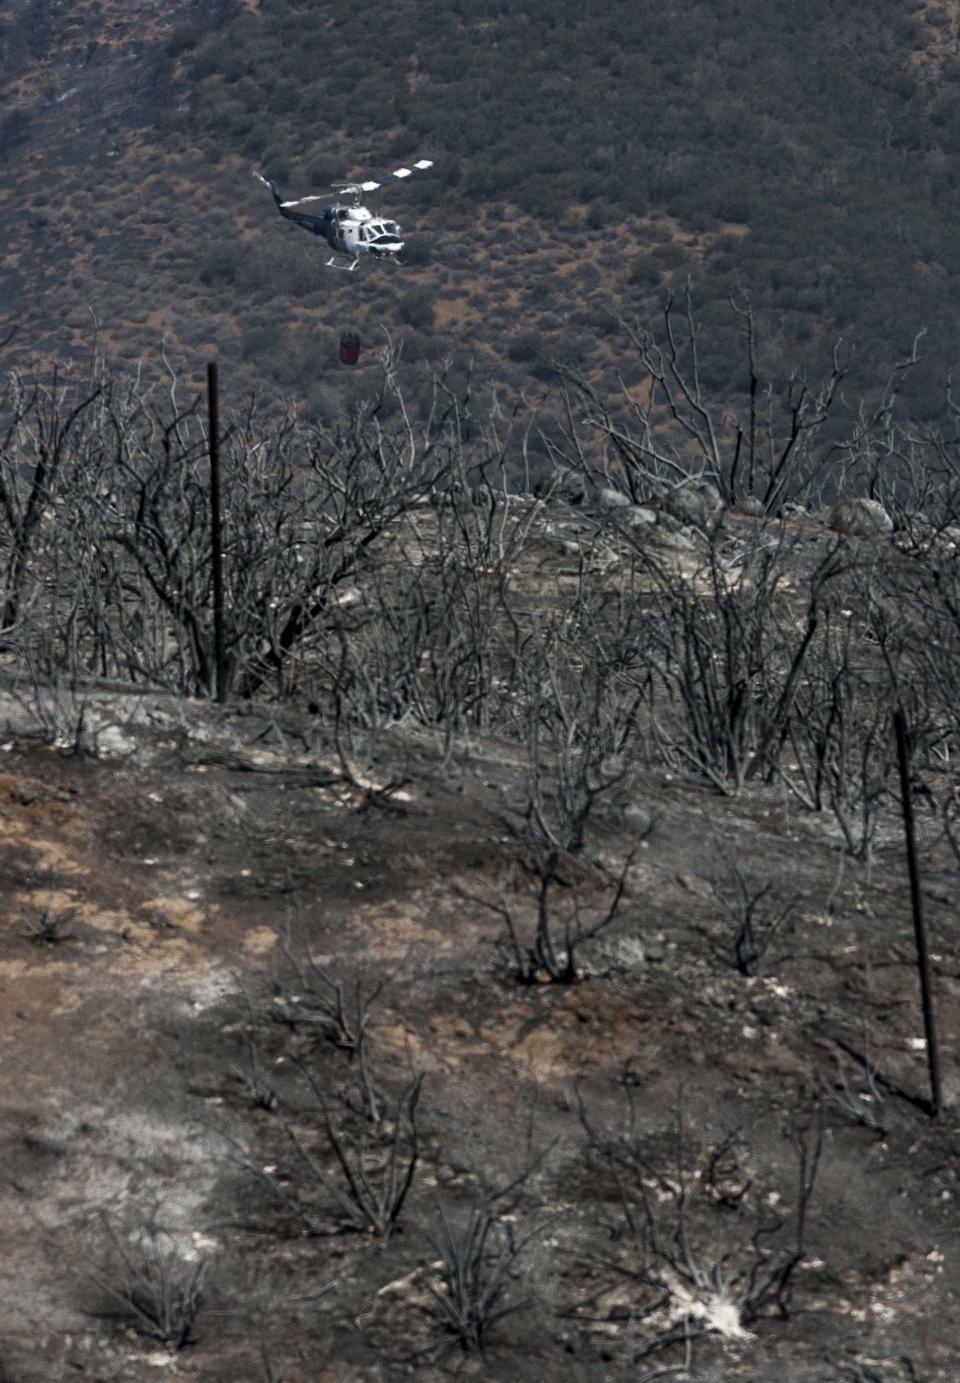 A helicopter positions itself for a drop on a hotspot near Point Mugu, Calif., Saturday, May 4, 2013. High winds and withering hot, dry air were replaced by the normal flow of damp air off the Pacific, significantly reducing fire activity. (AP Photo/Ringo H.W. Chiu)